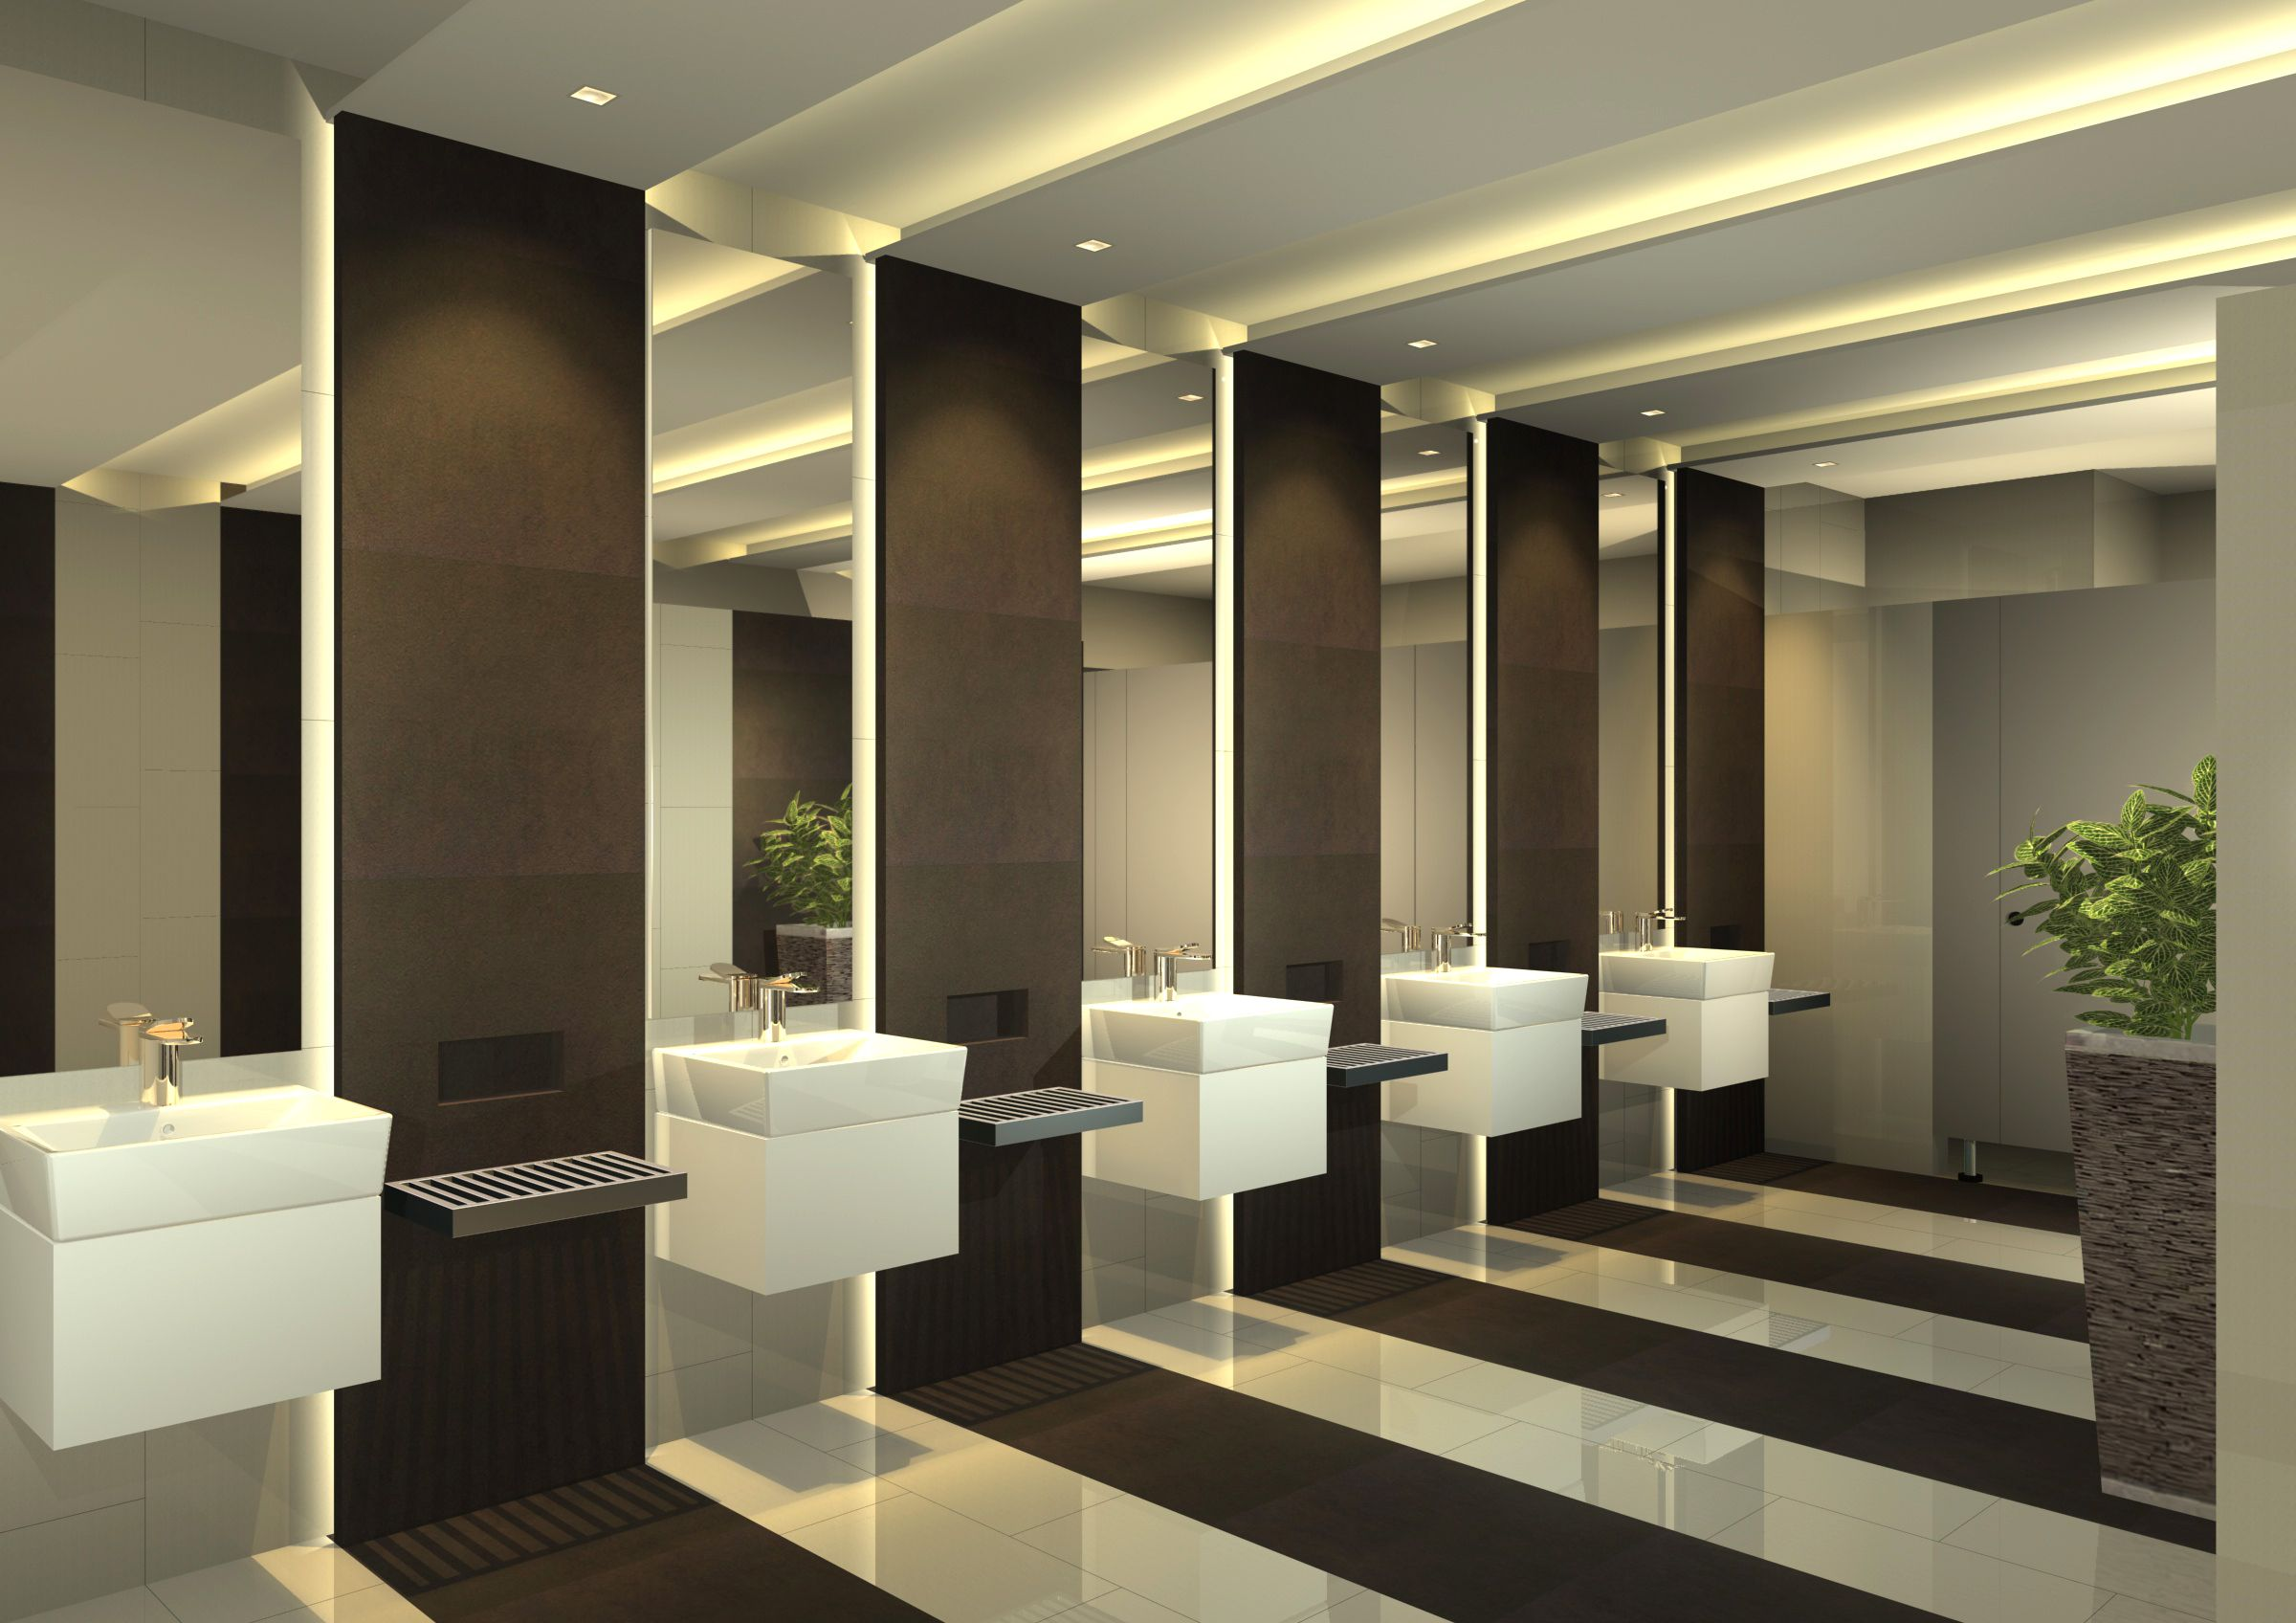 Treasury building toilet female s1 1 d3 11212014 office for Office bathroom designs